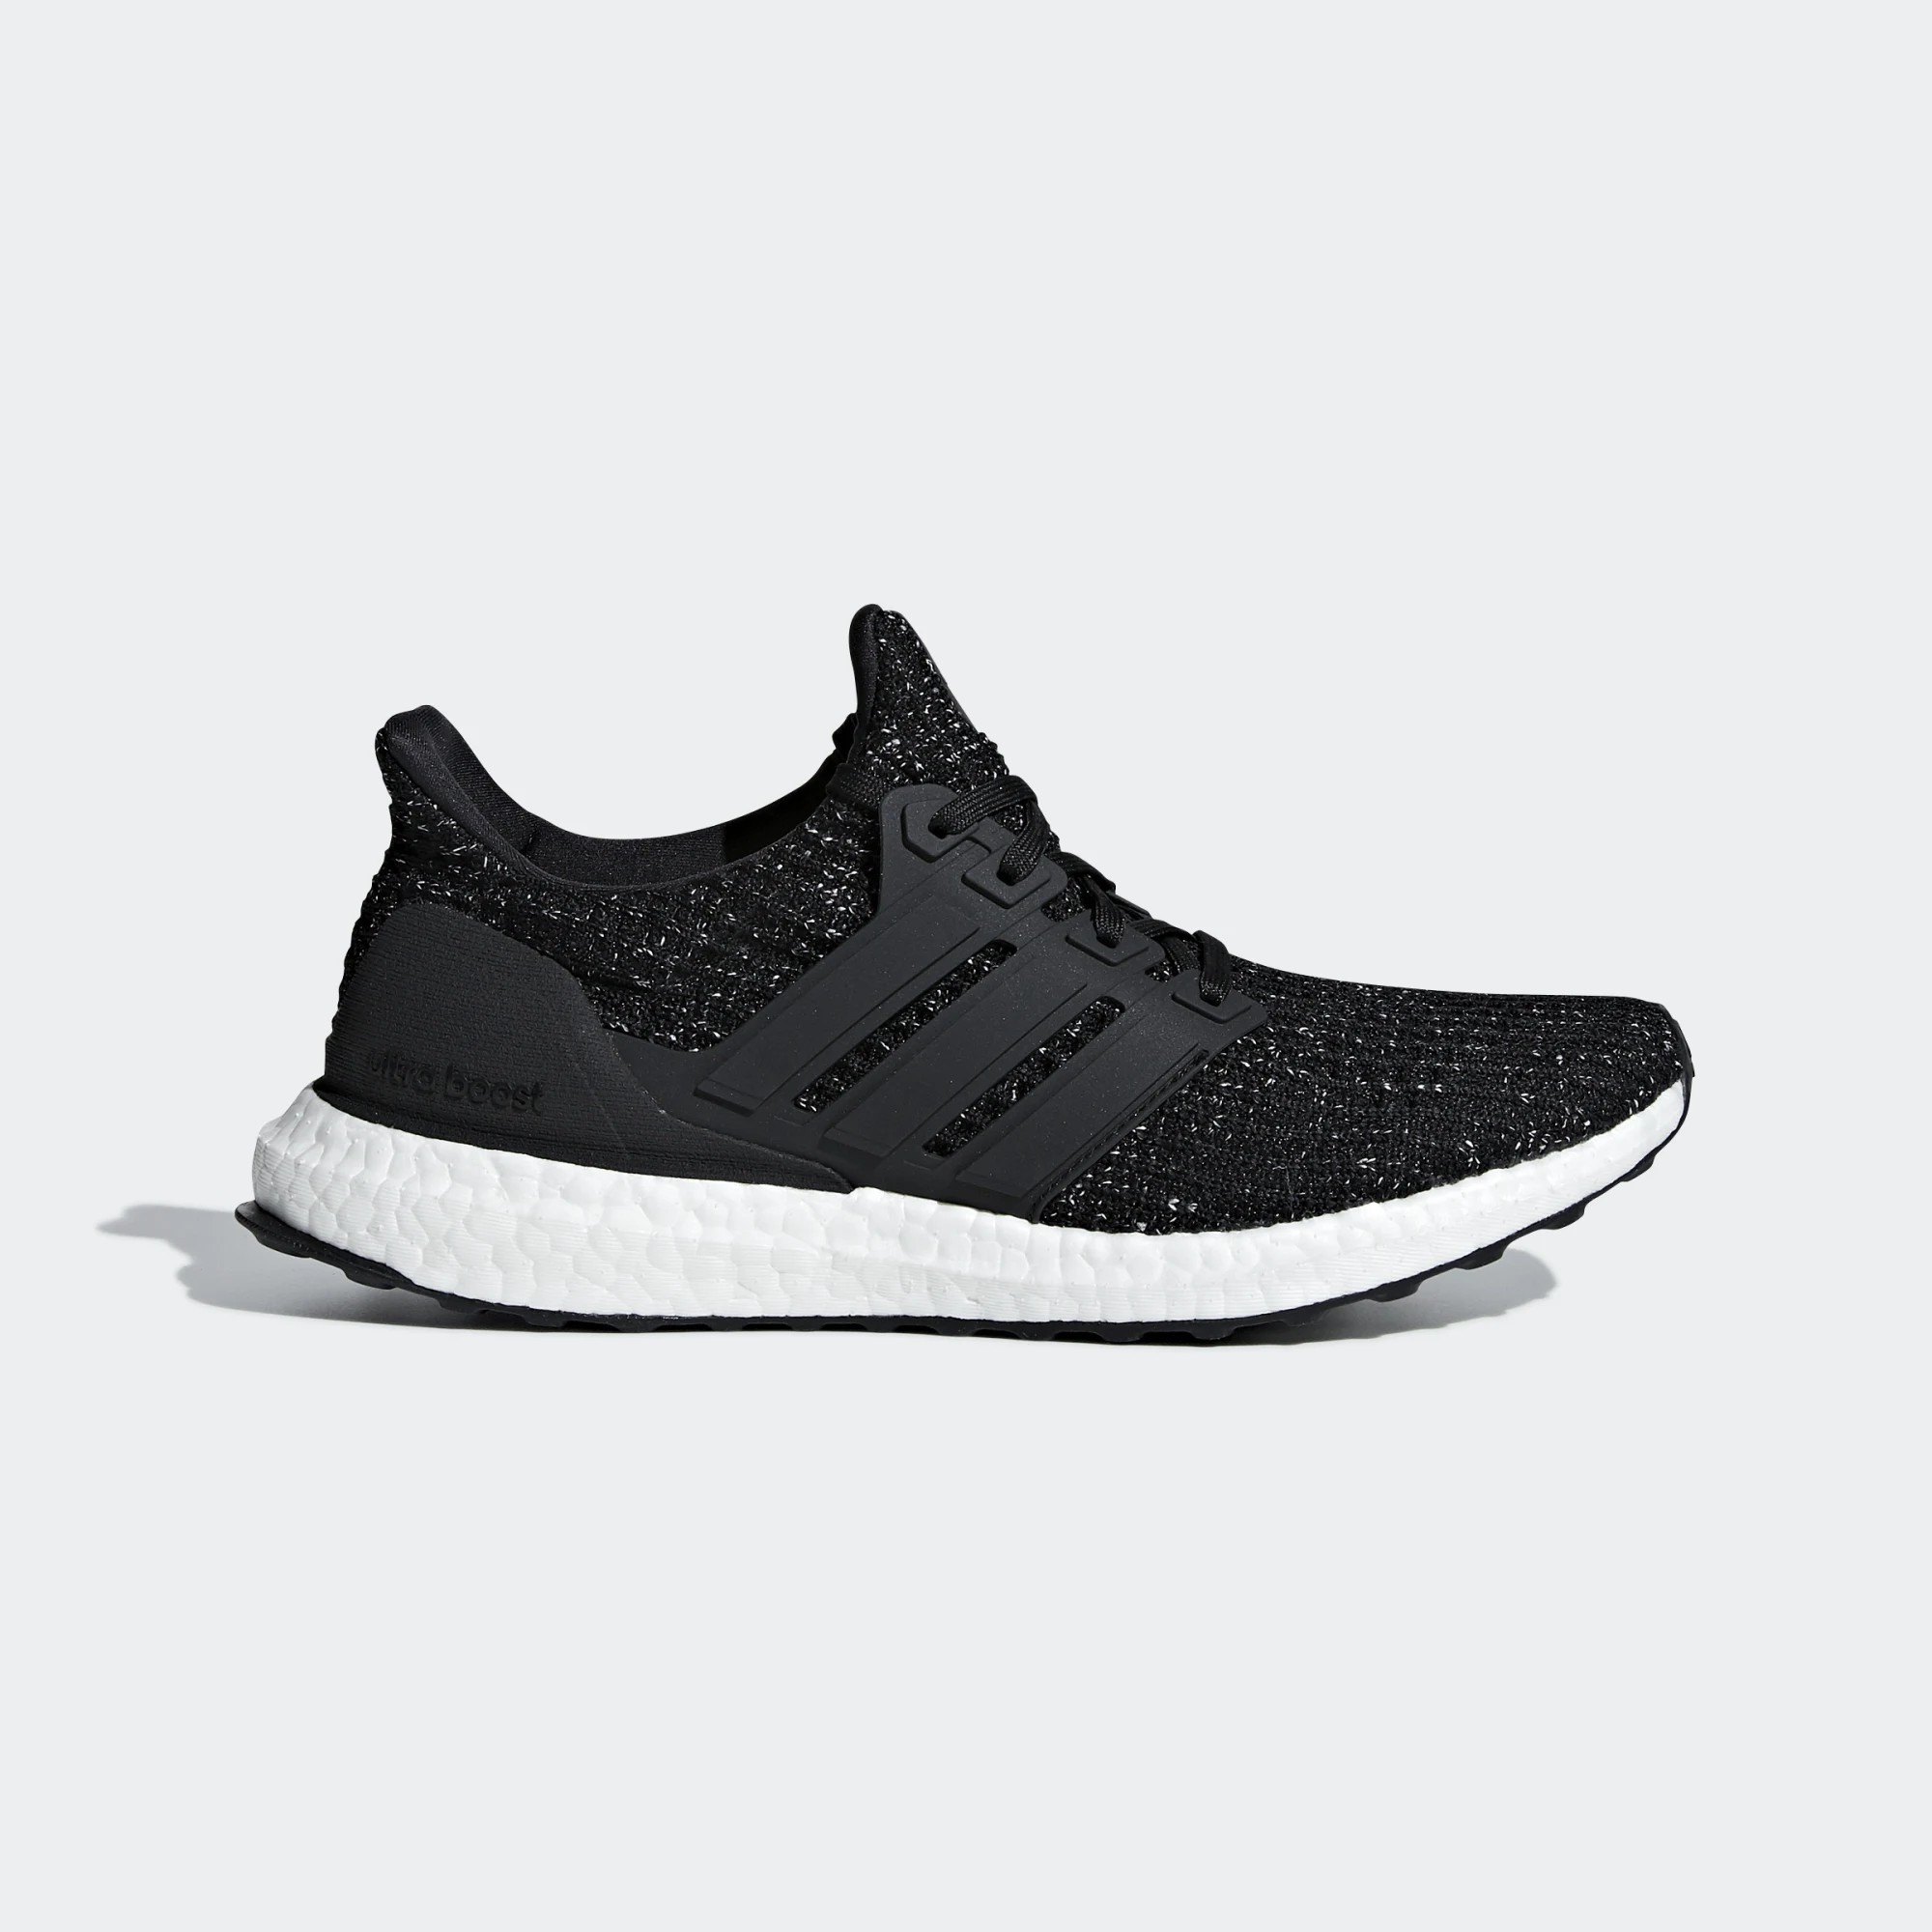 adidas F36125 Ultraboost Femme Fonctionnement Chaussure Charcoal/Blanche